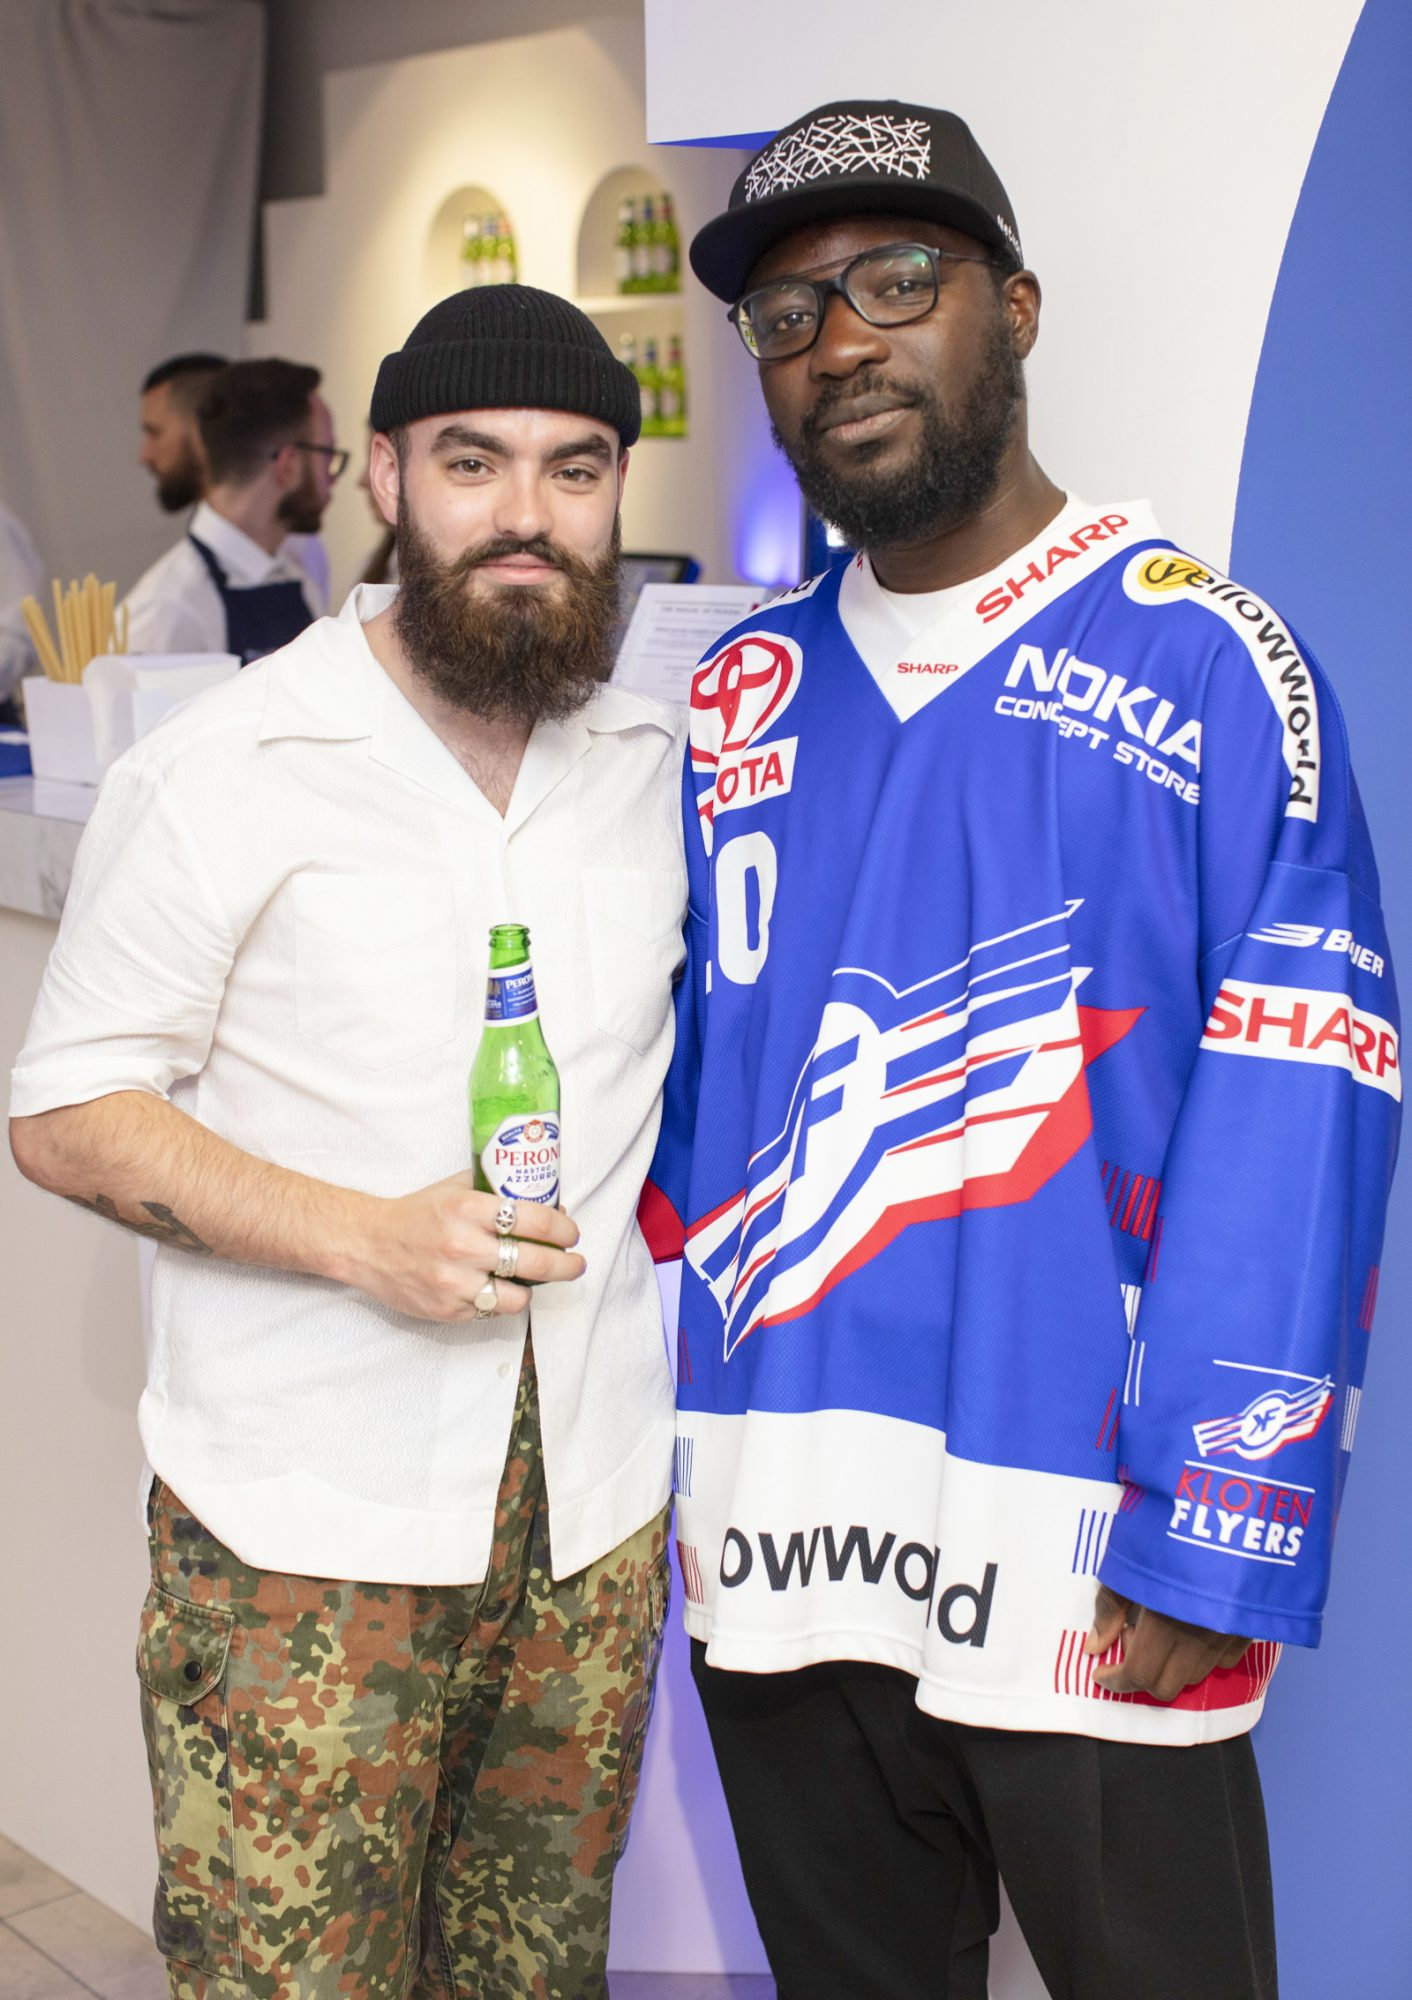 Jake McCabe & Timi Ogunyemi pictured at the launch of The House of Peroni, which is open at the RHA in Dublin until Sunday, 1st September 2019. This year's residency sees the RHA transformed into a stylish Peroni inspired experience, filled with food, drink and design. www.thehouseofperoni.com Photo: Anthony Woods.